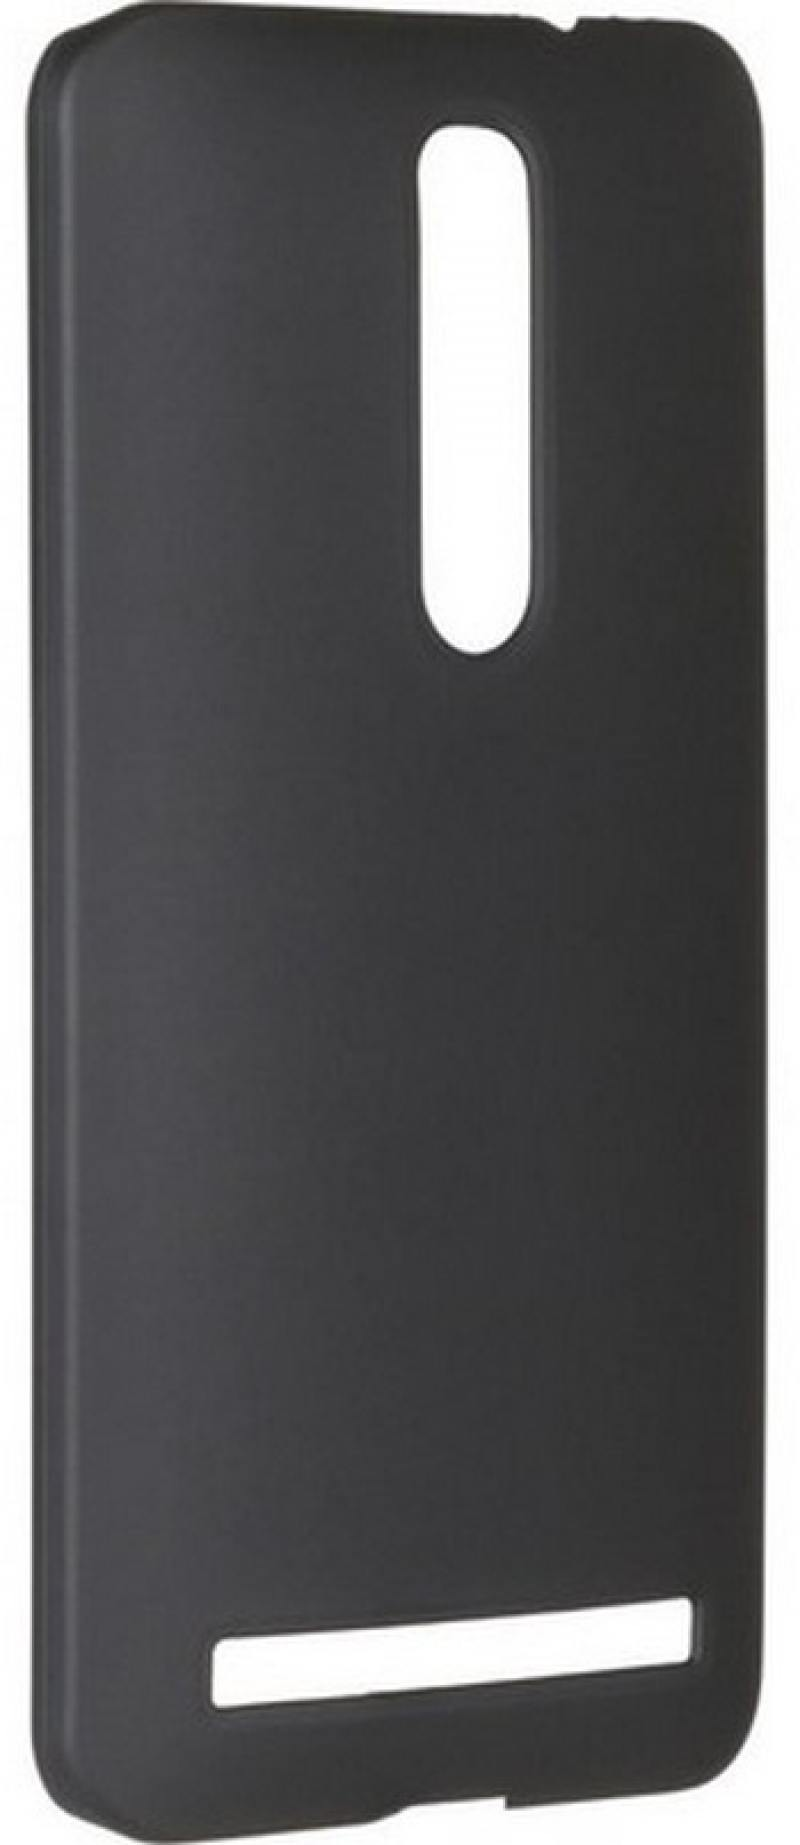 Чехол-накладка для Asus Zenfone С ZC451CG Pulsar CLIPCASE PC Soft-Touch Black клип-кейс, пластик soft-touch ibox business для asus zenfone с zc451cg